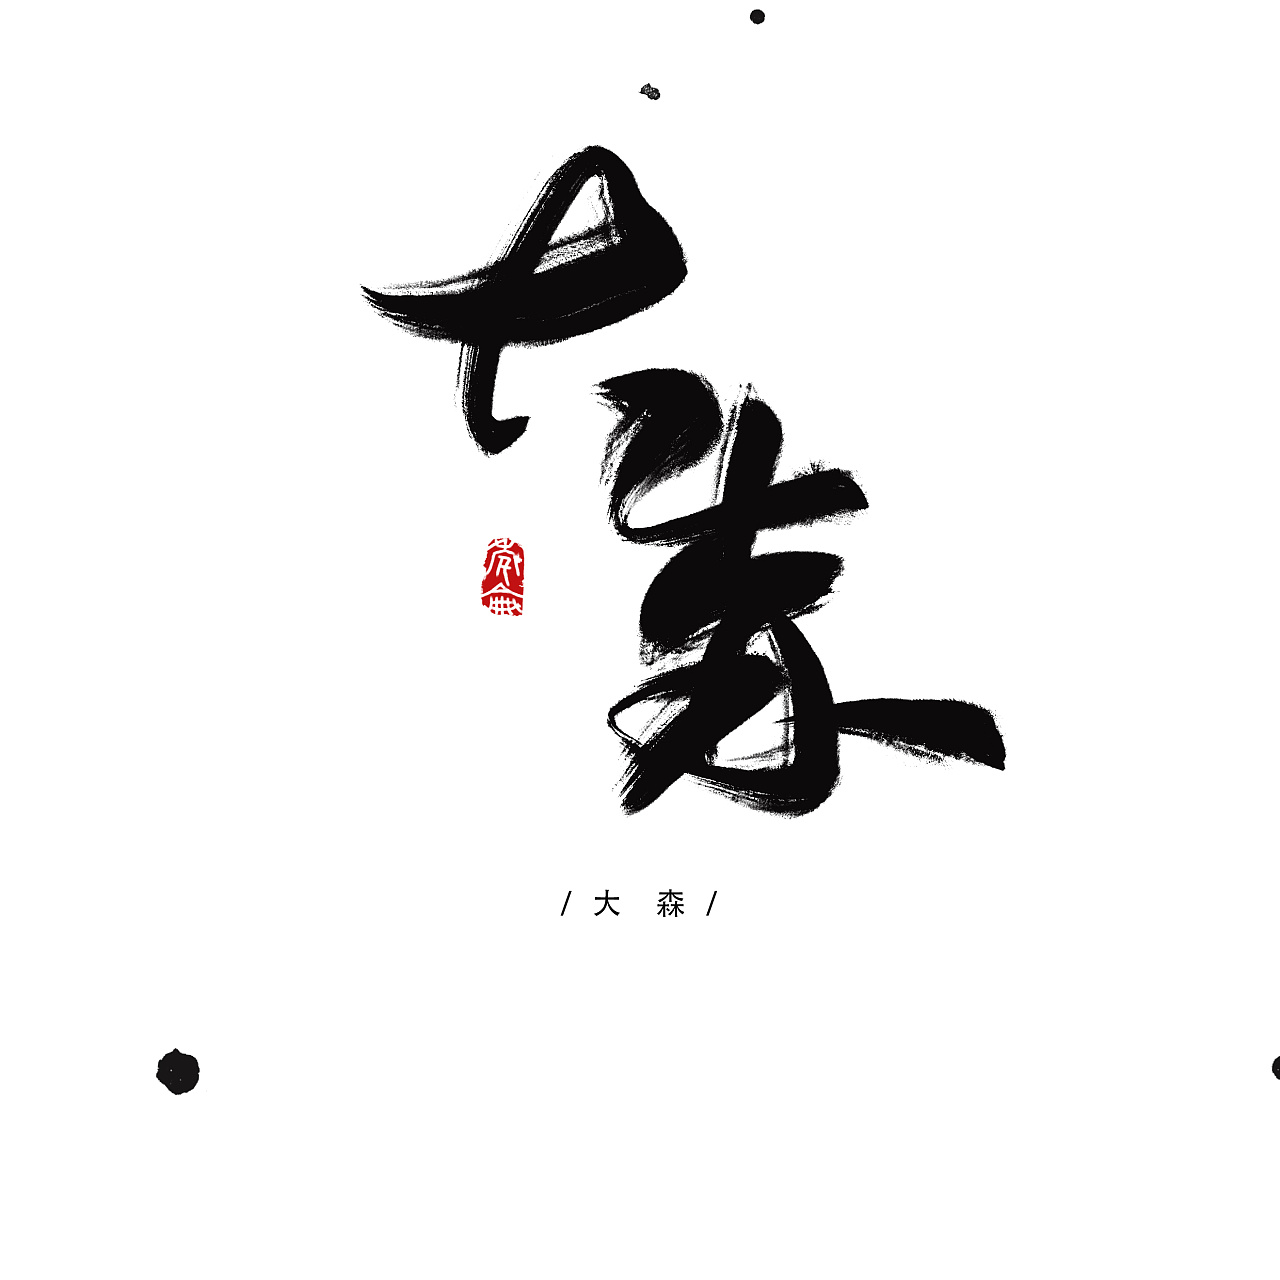 chinesefontdesign.com 2017 09 12 05 58 40 509136 16P Chinese traditional calligraphy brush calligraphy style appreciation #.21